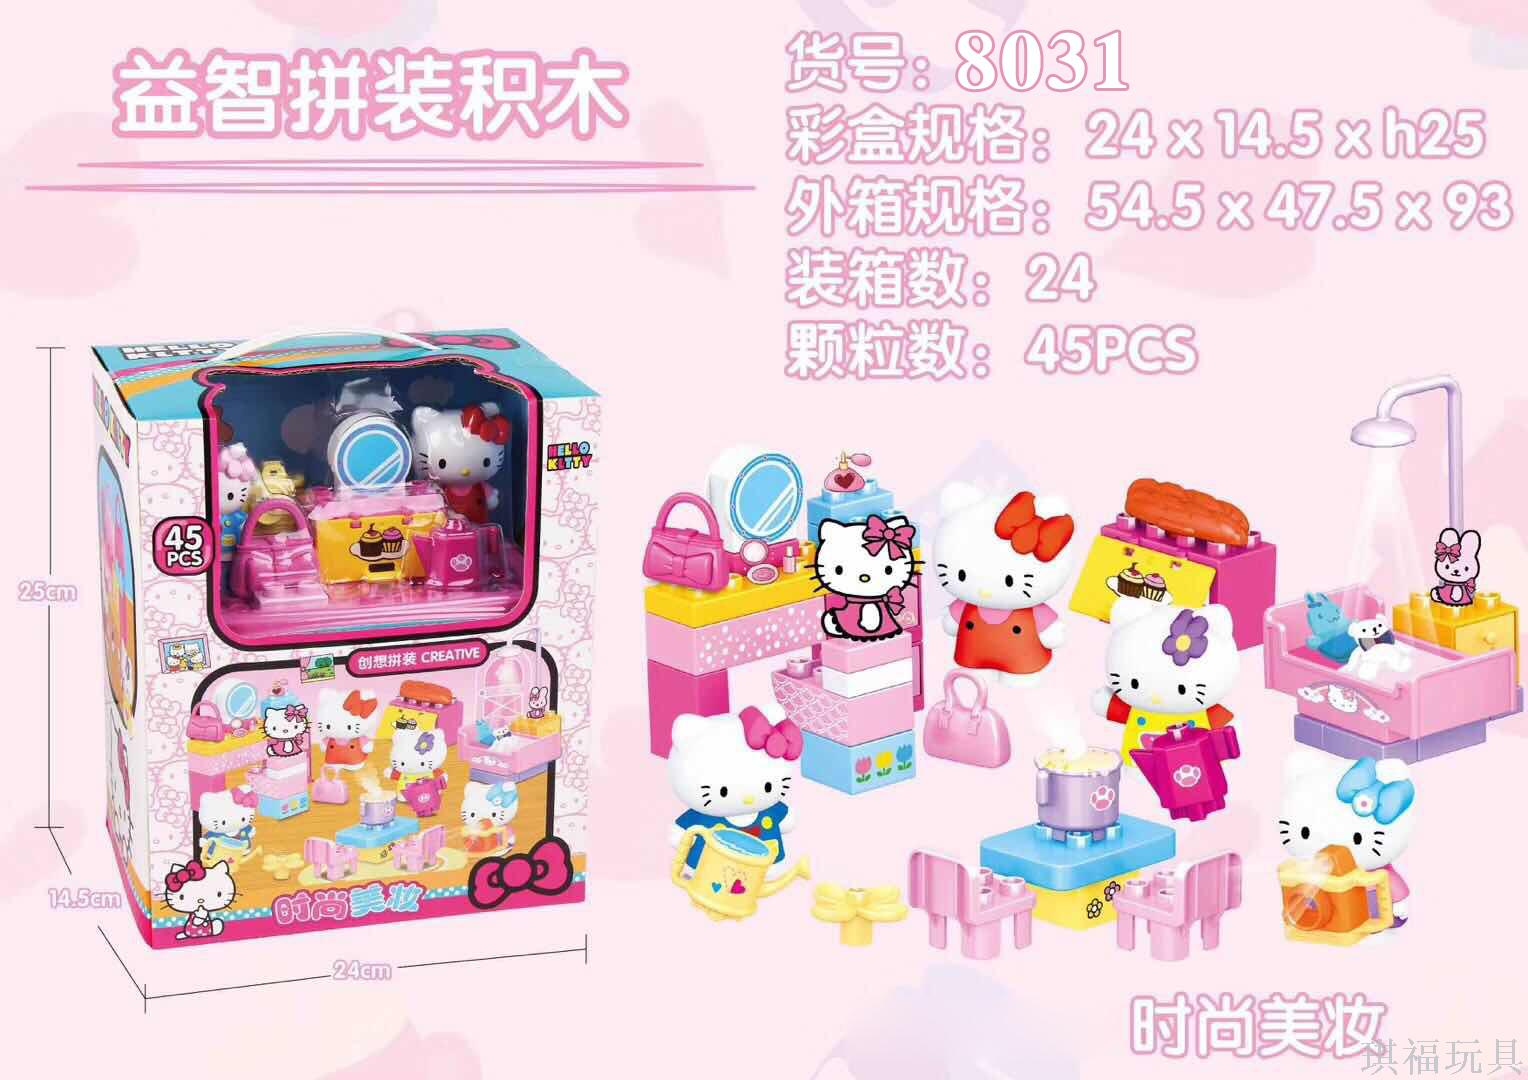 House Toys For Girls : Supply star power kt fashion beauty makeup bread house puzzle